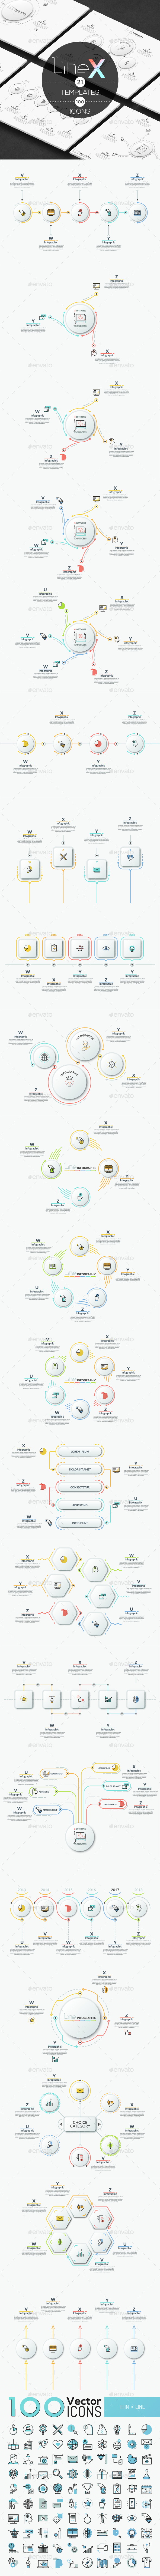 GraphicRiver Line-X Infographic 21004829